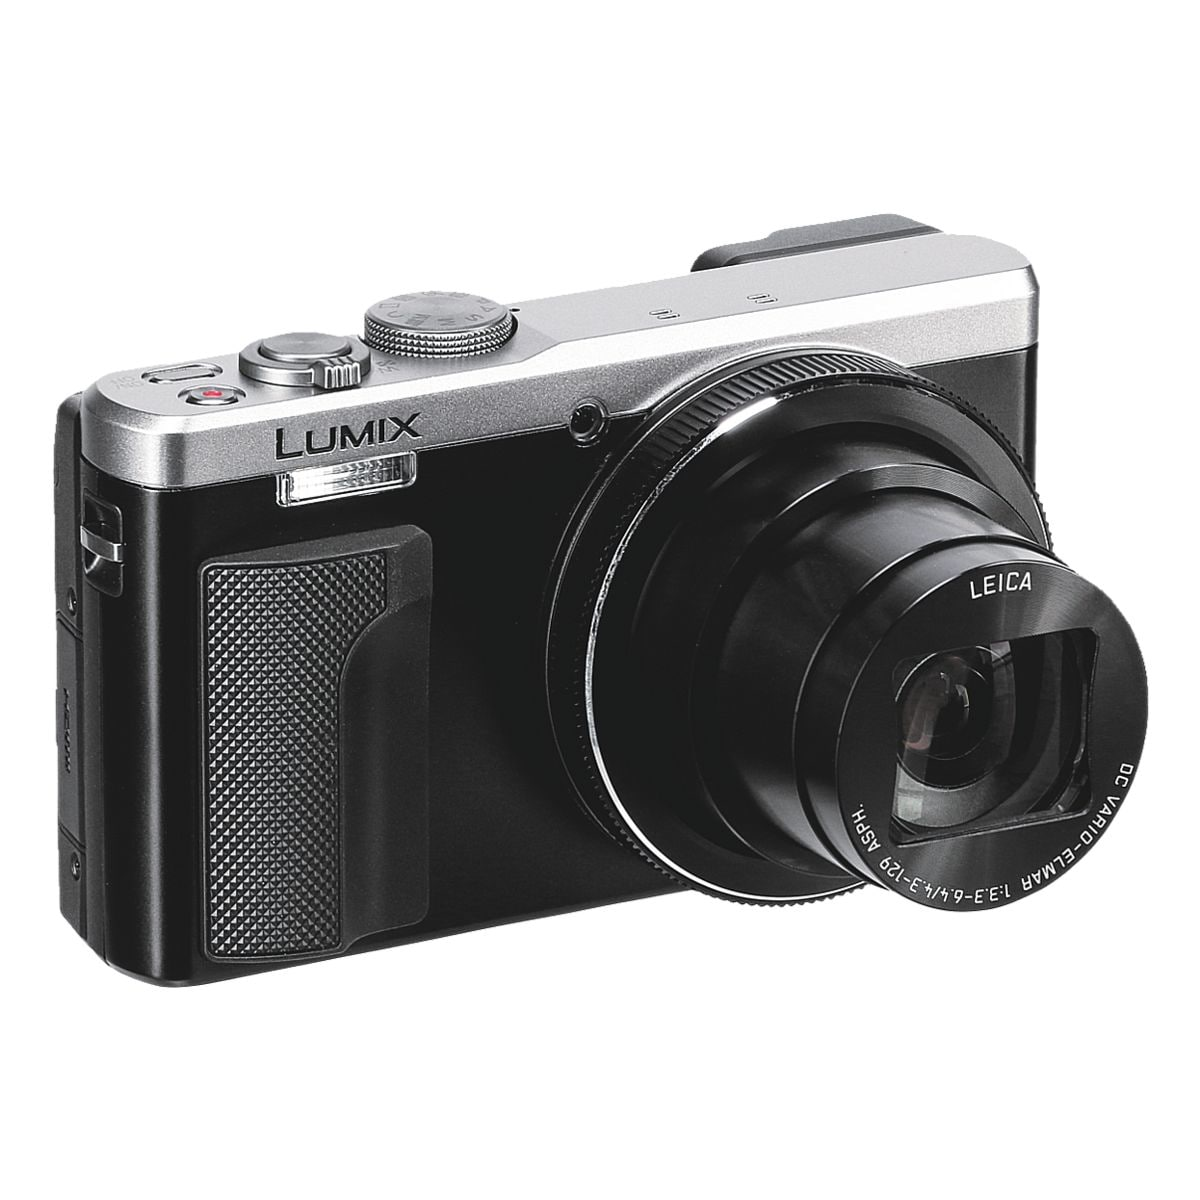 Panasonic Digitalkamera »Lumix DMC-TZ81«